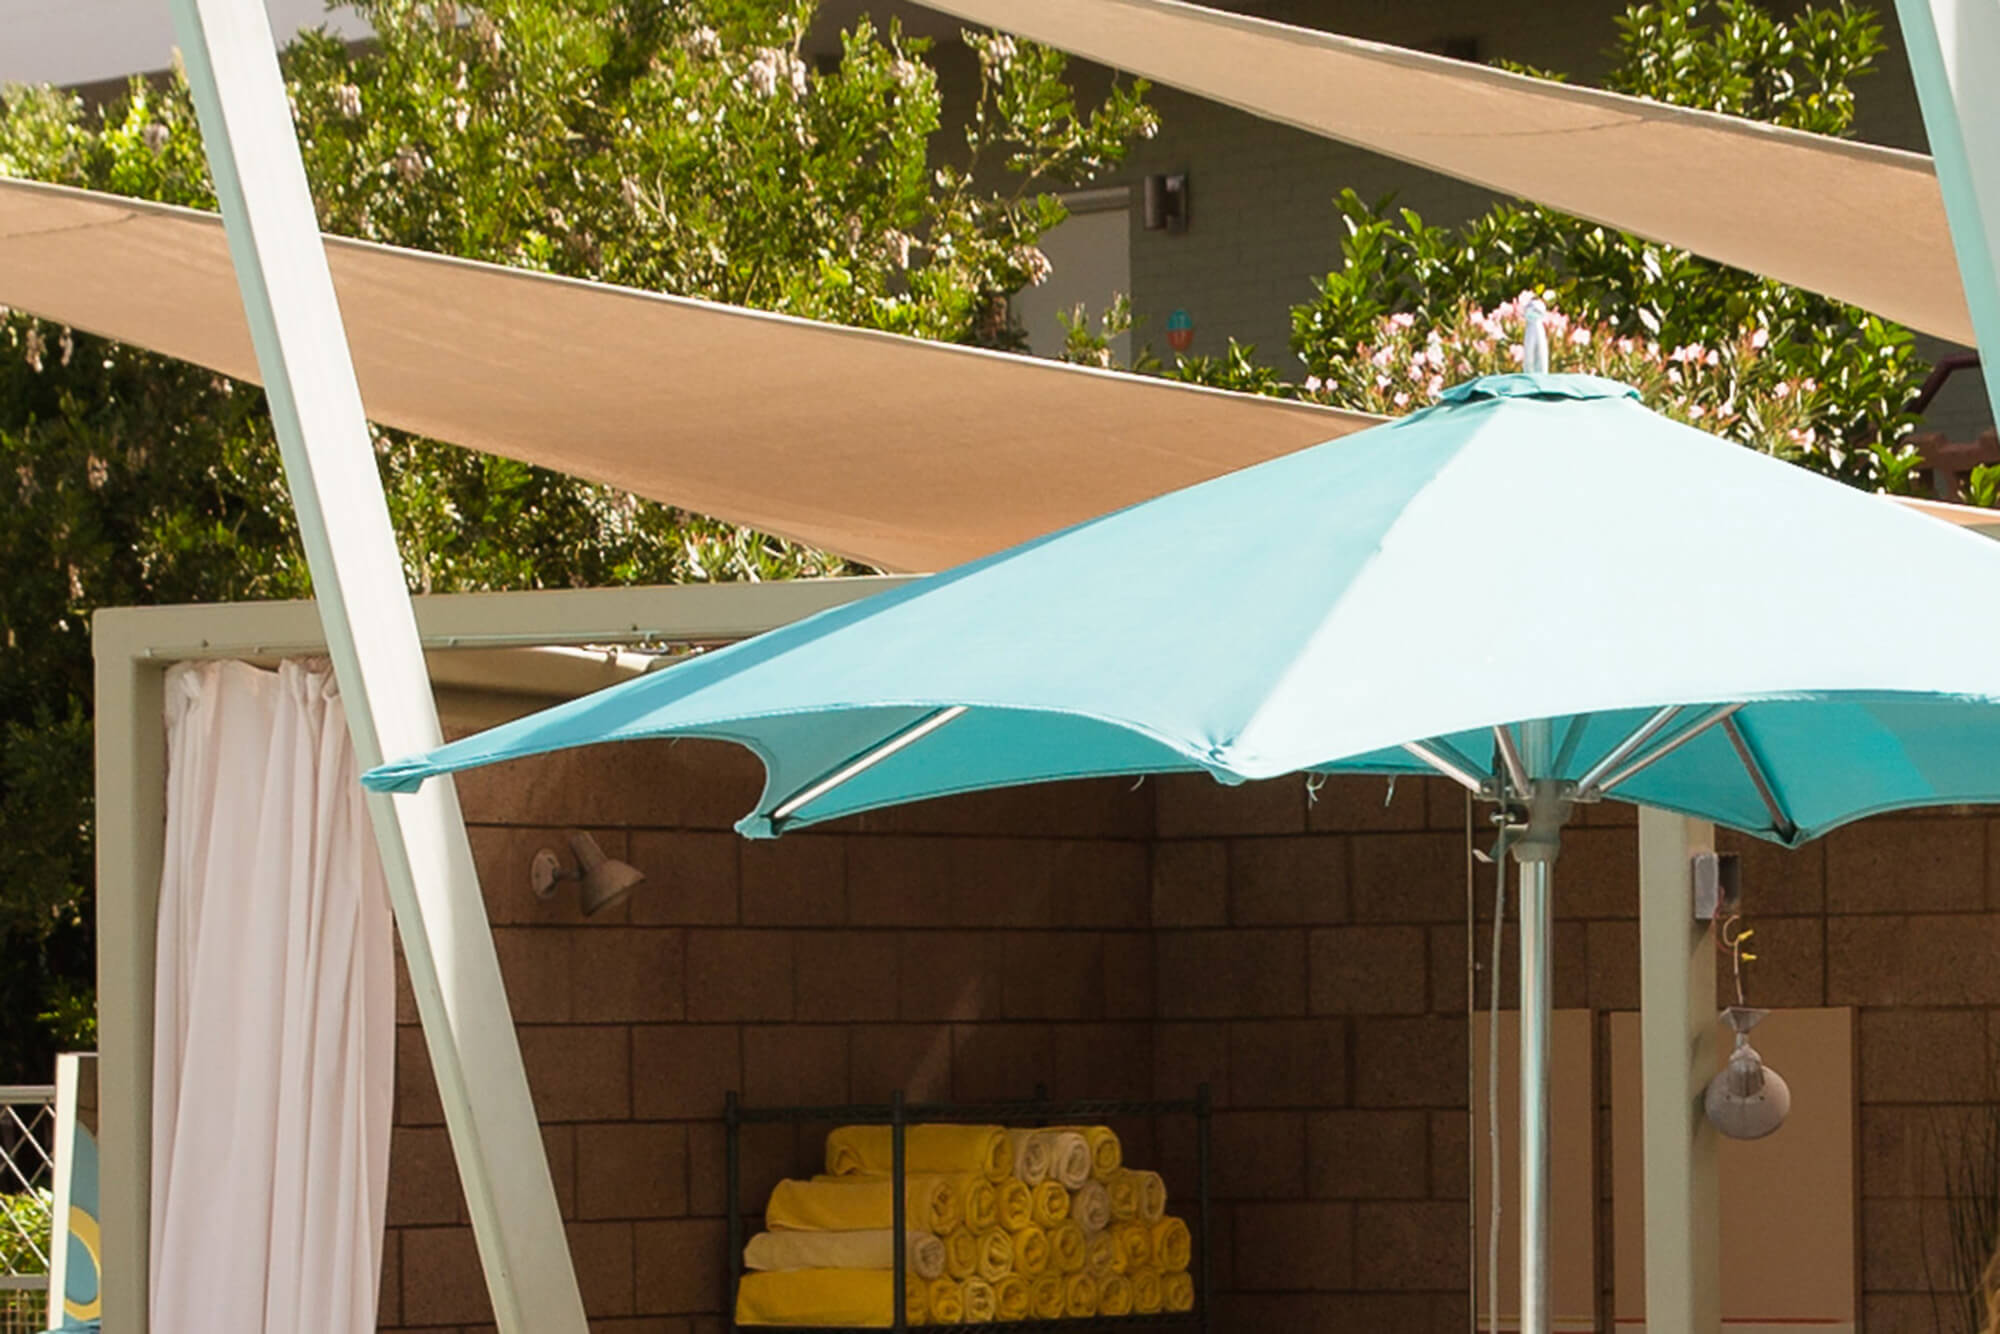 Umbrella with teal Sunbrella fabric poolside at a hotel